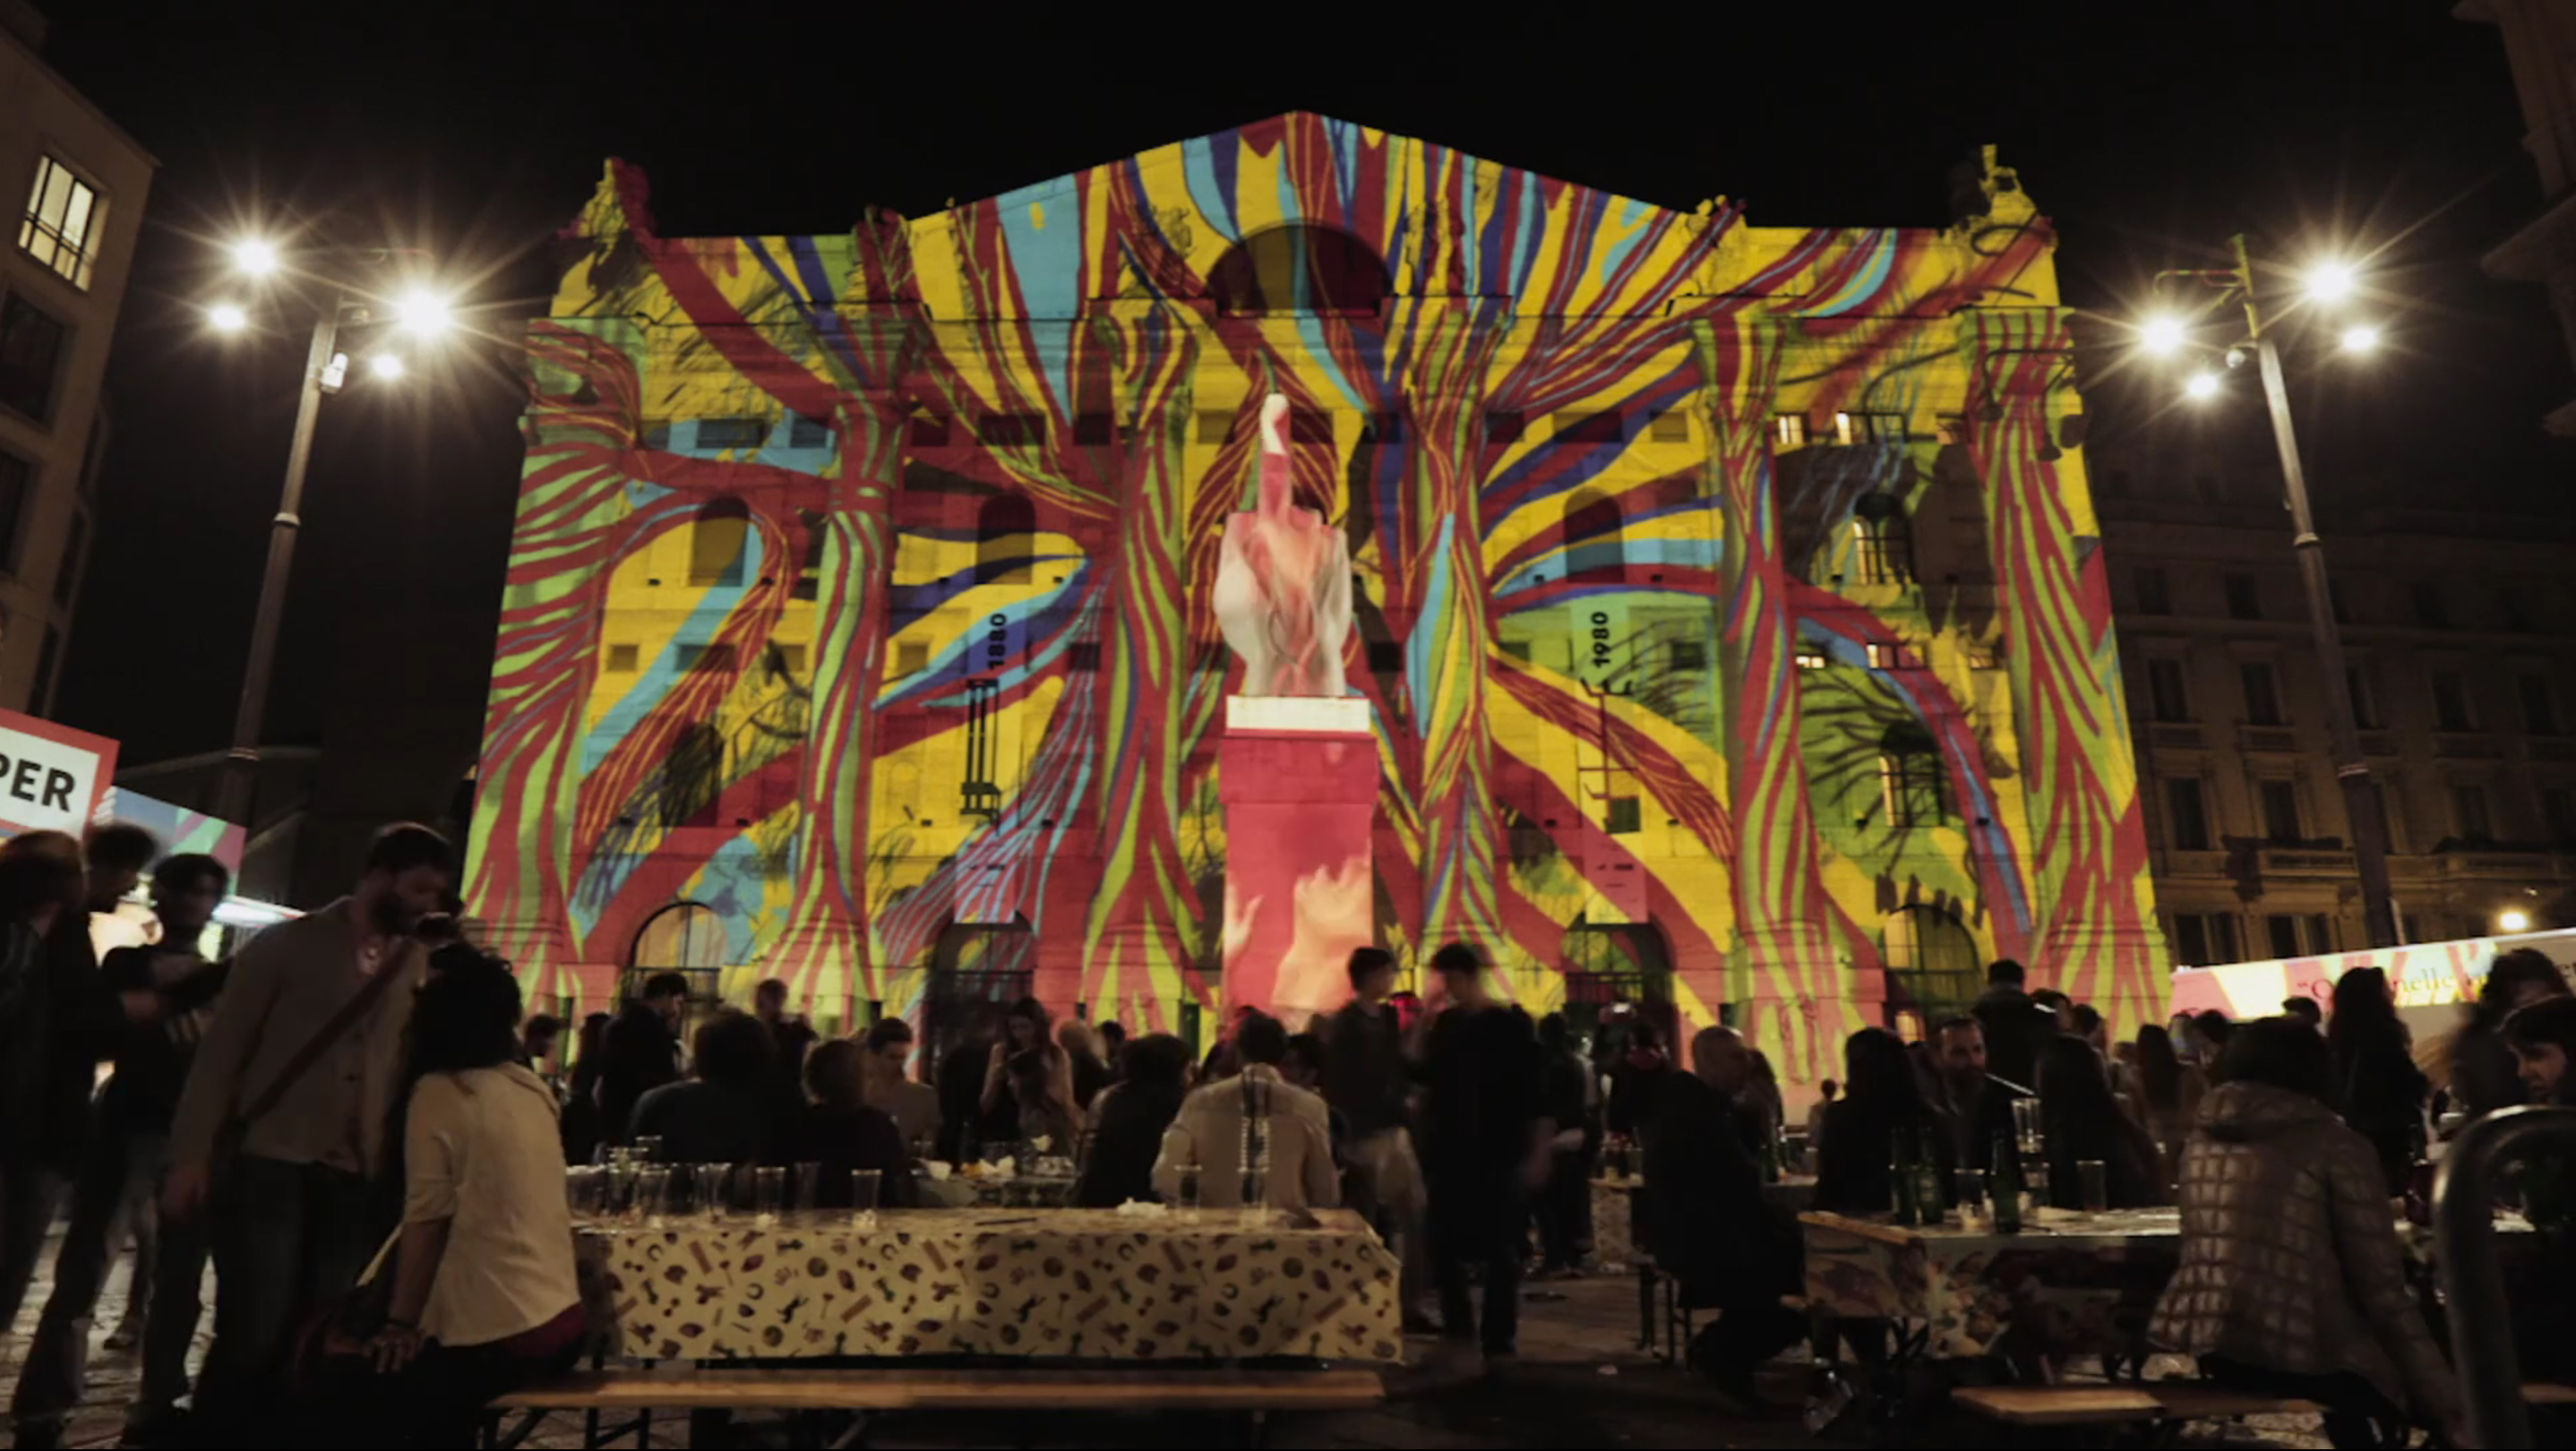 For the furniture fair in 2015 we interpreted the presence of SKY Arte HD in Souvenir de Milan with an installation that allowed the performance of 5 artists in as many live evenings.